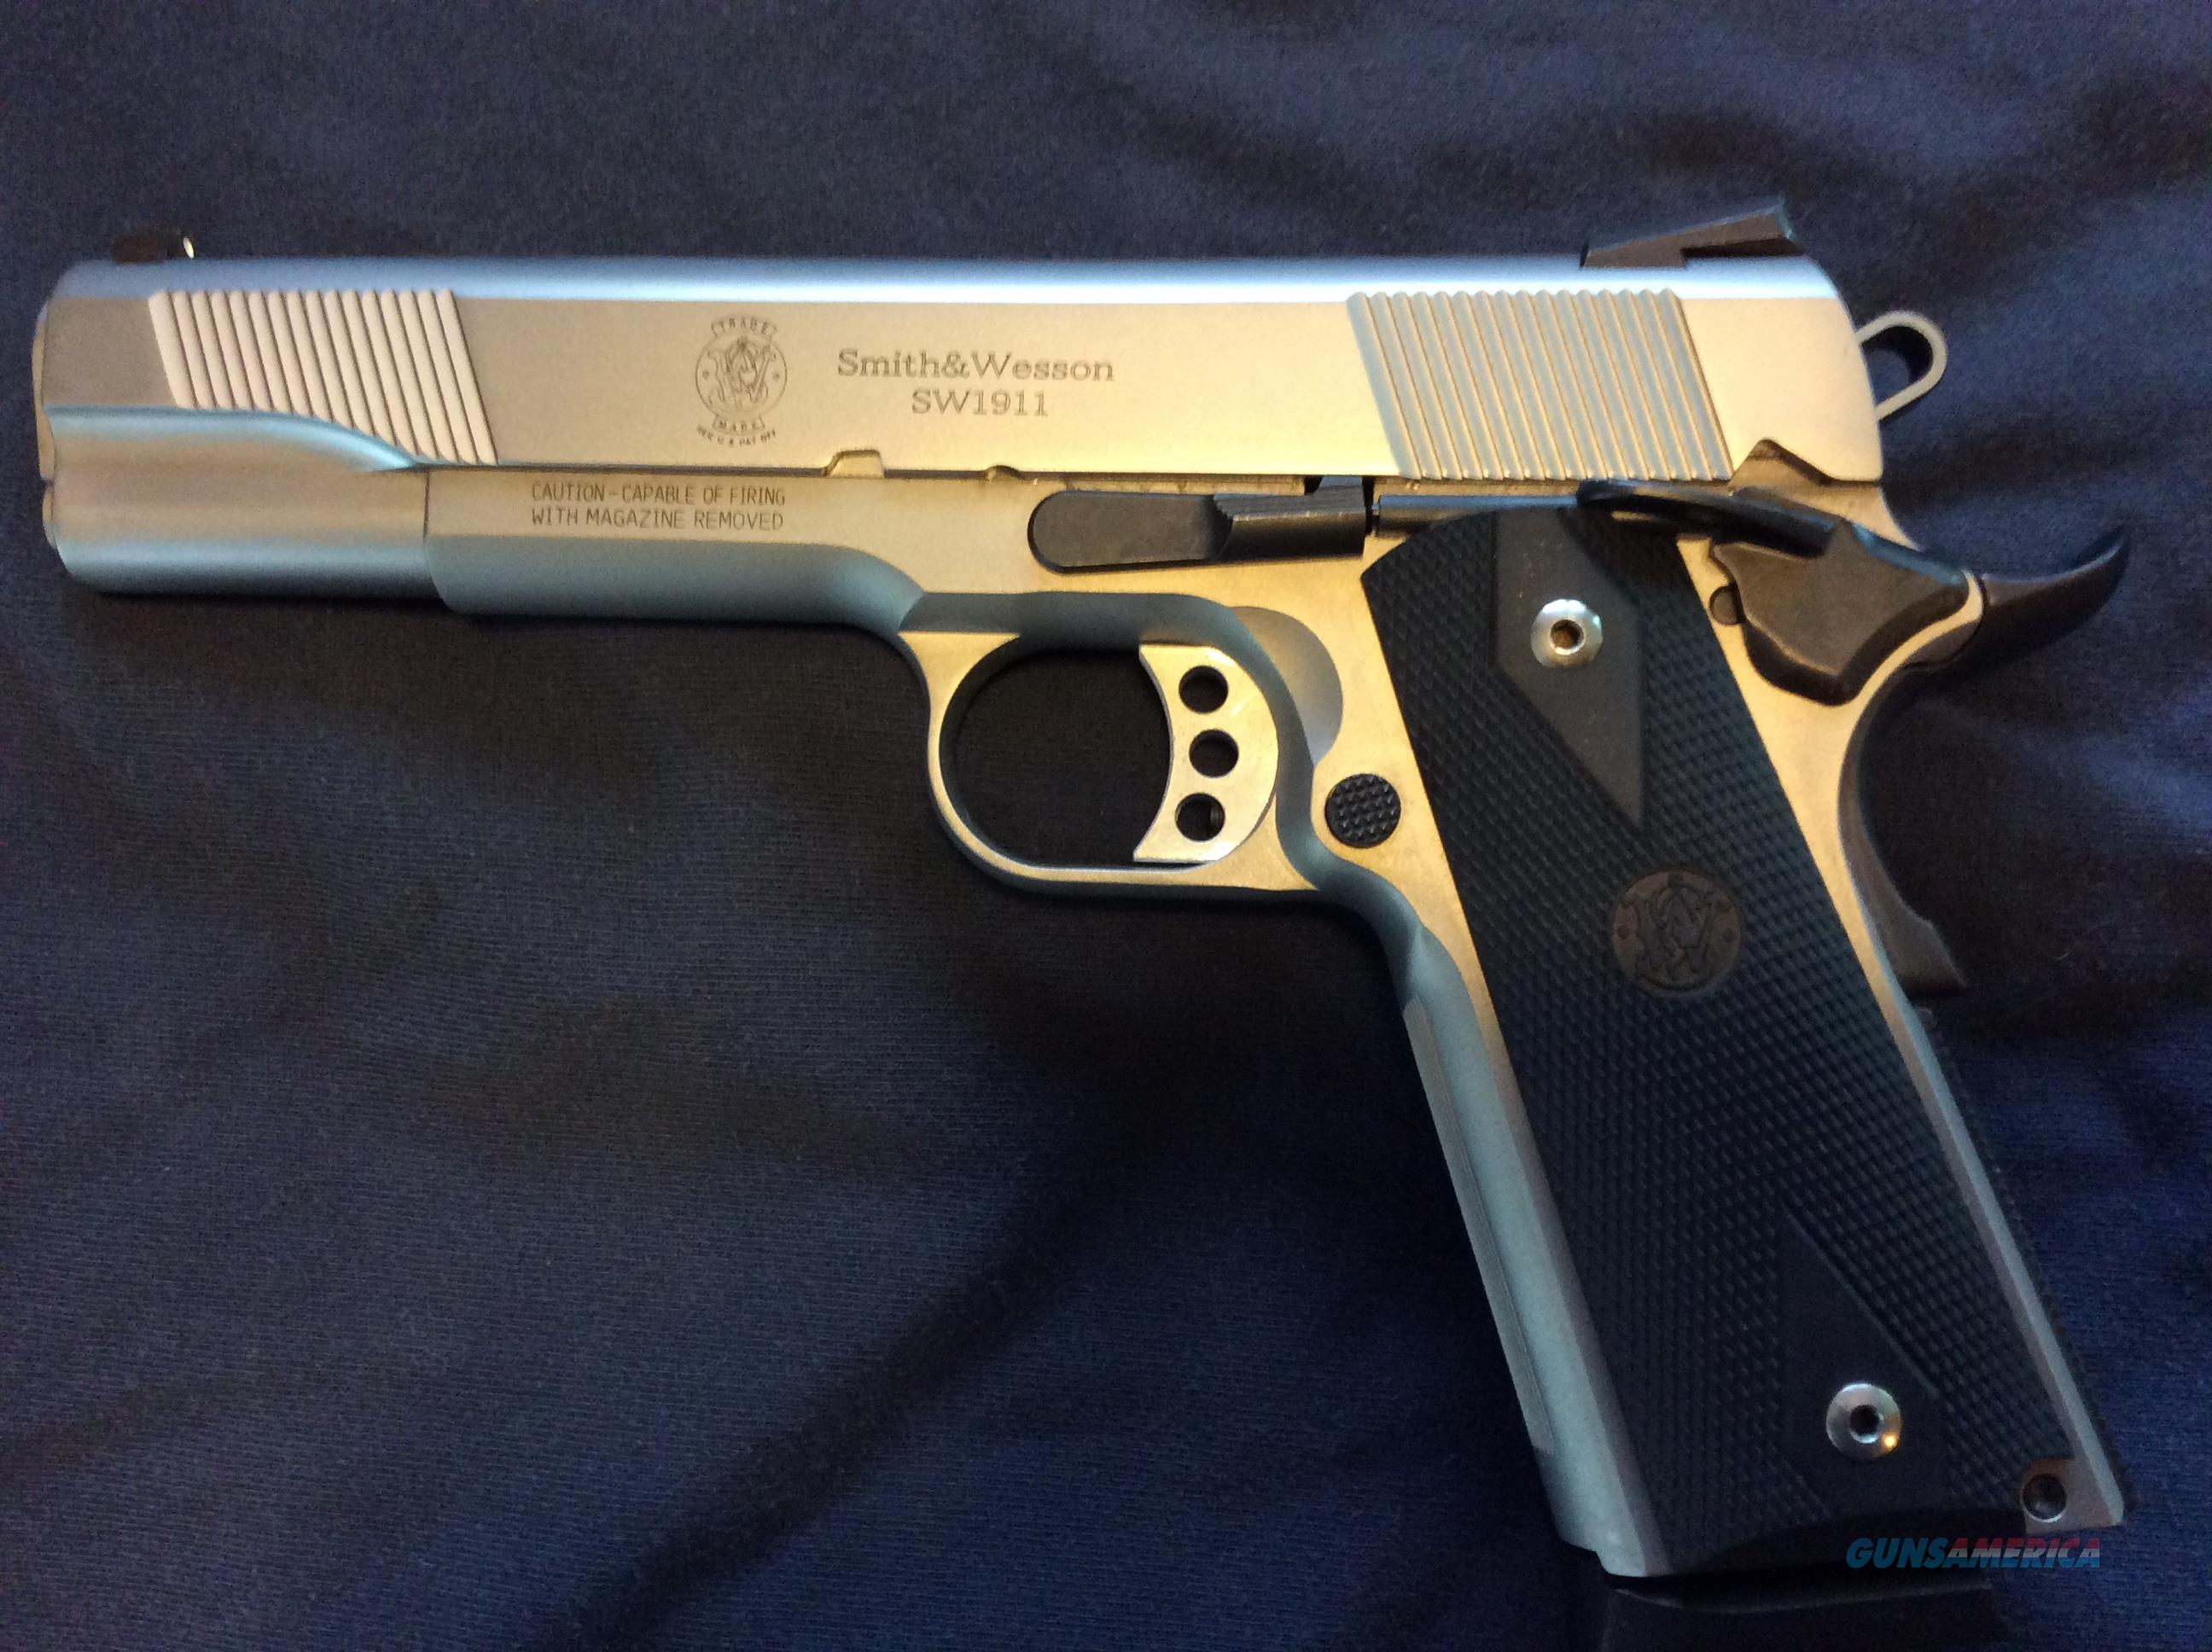 "S&W 1911 SS 5"" WITH ONE 8RD MAG (USED LIKE NEW) FREE S/H  Guns > Pistols > Smith & Wesson Pistols - Autos > Steel Frame"